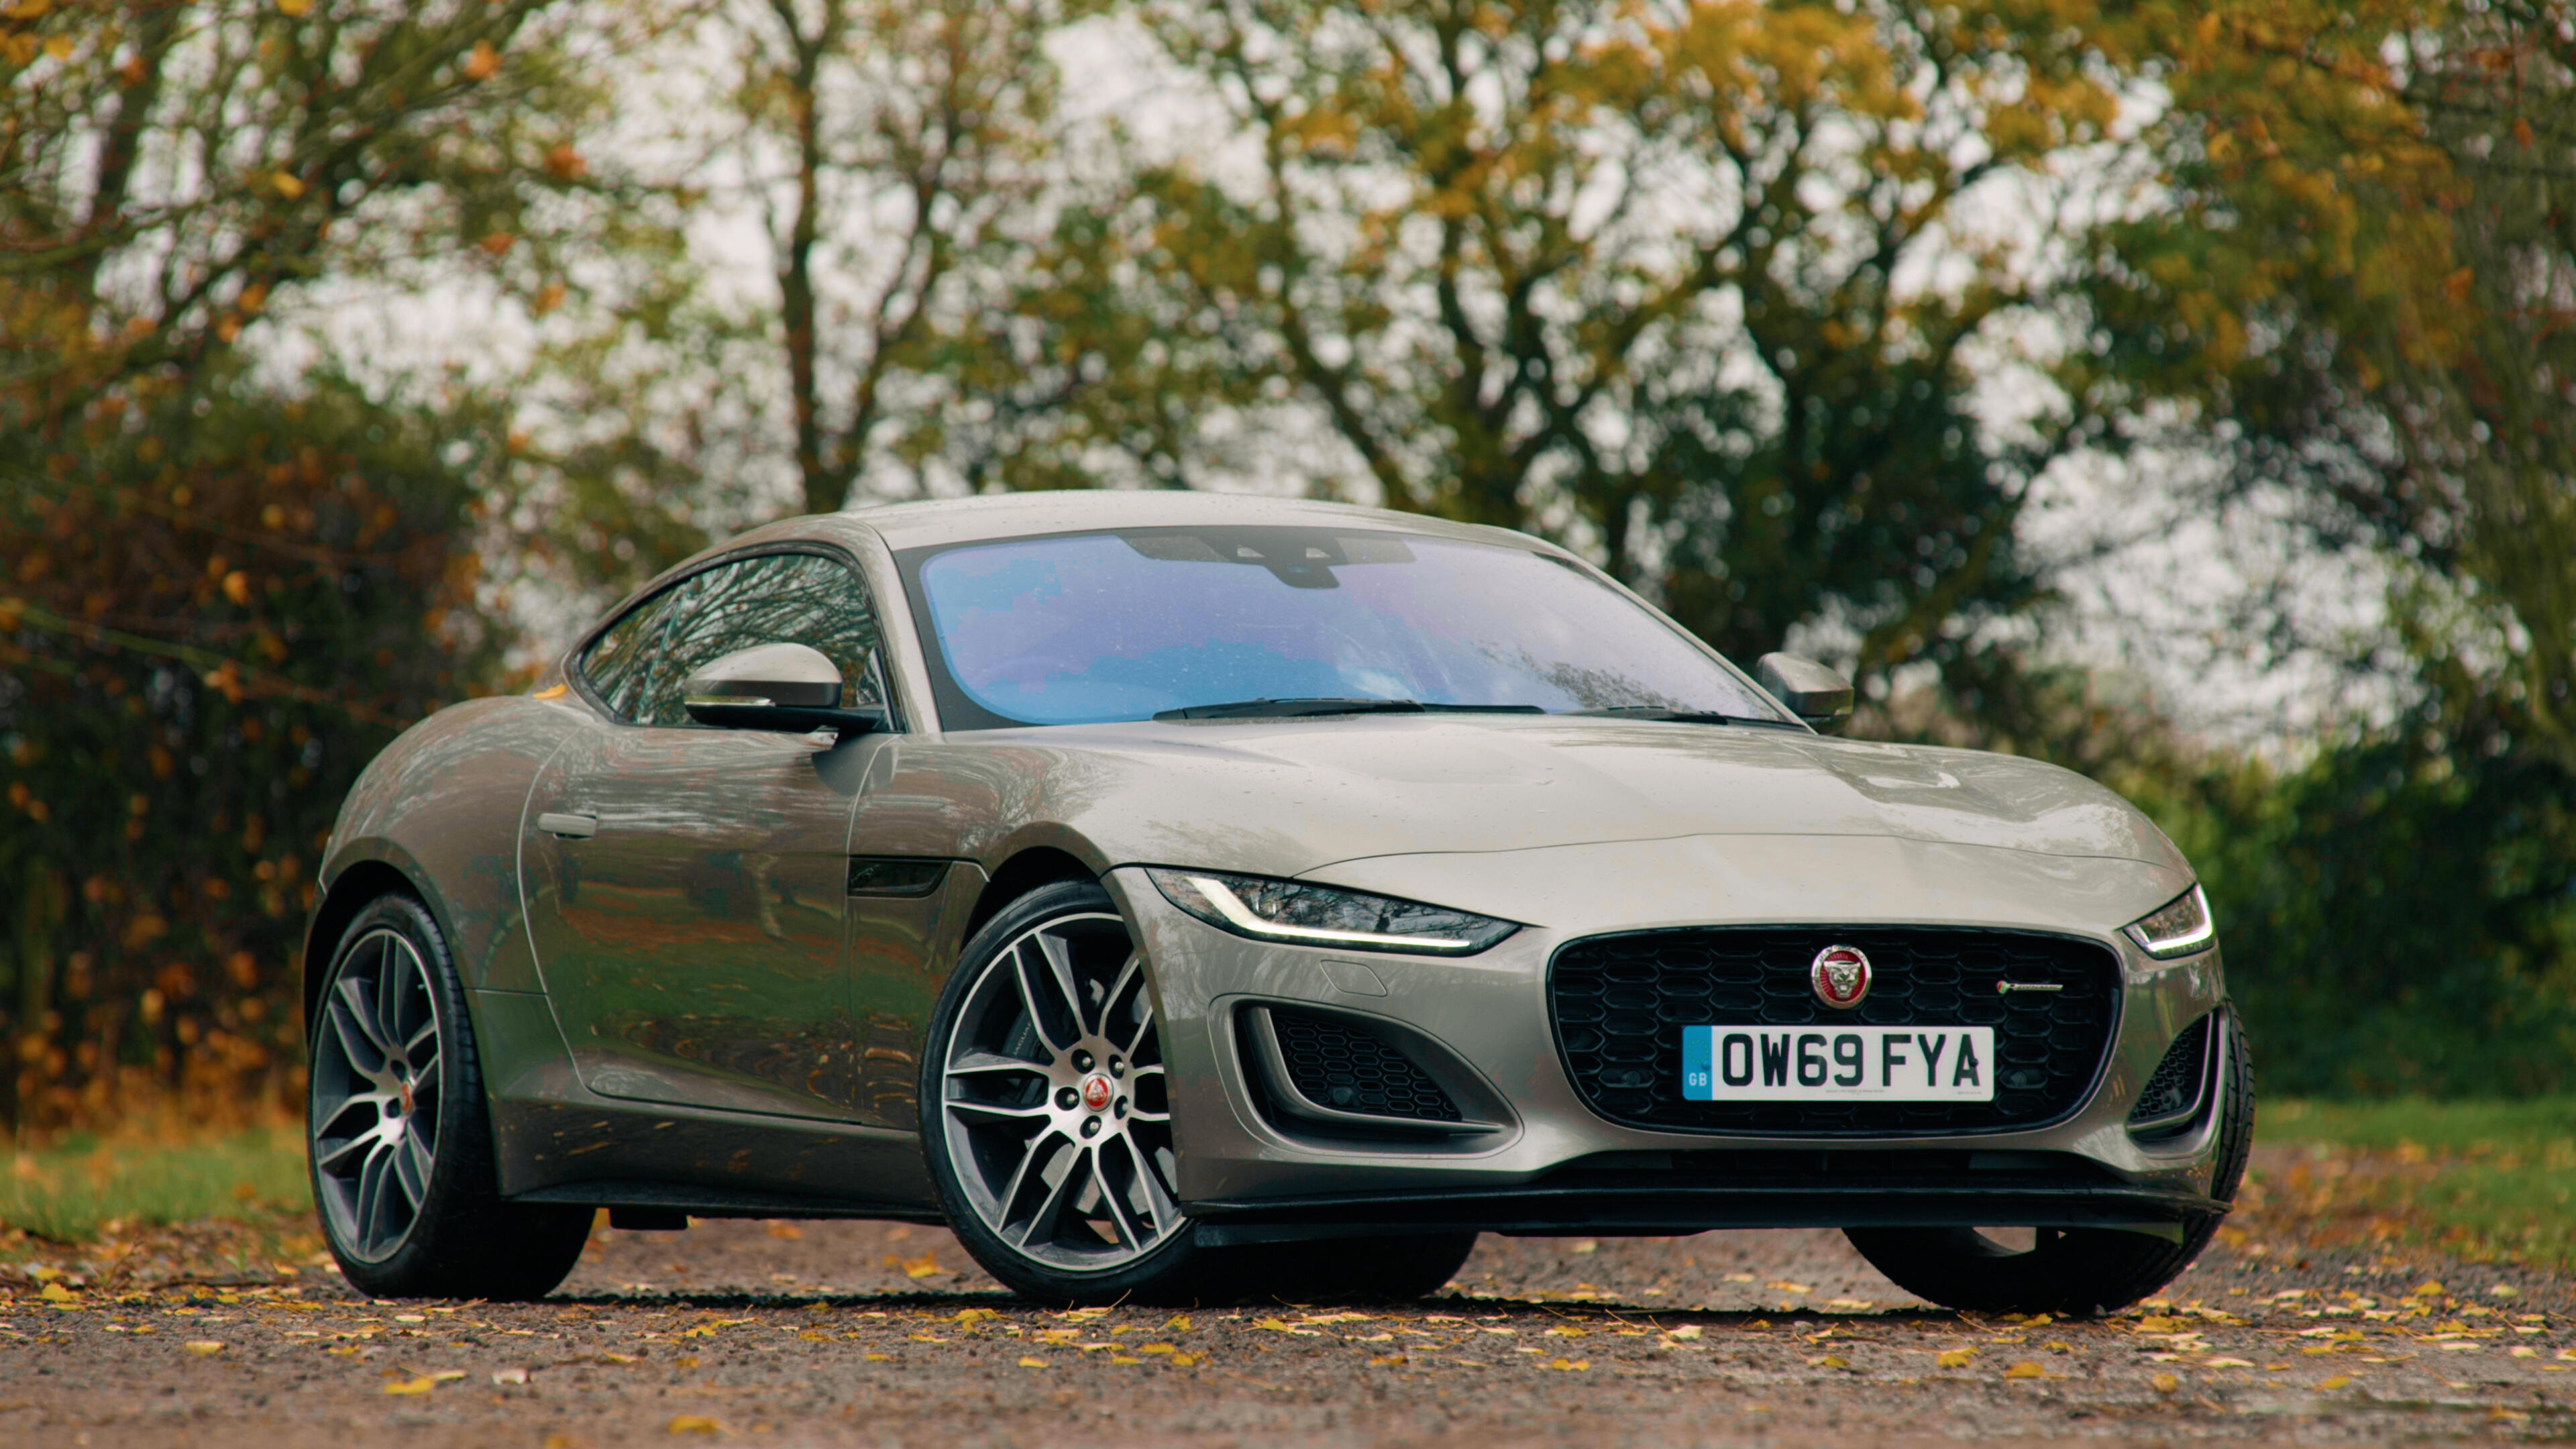 Video: The 2021 Jaguar F-Type is more appealing than ever